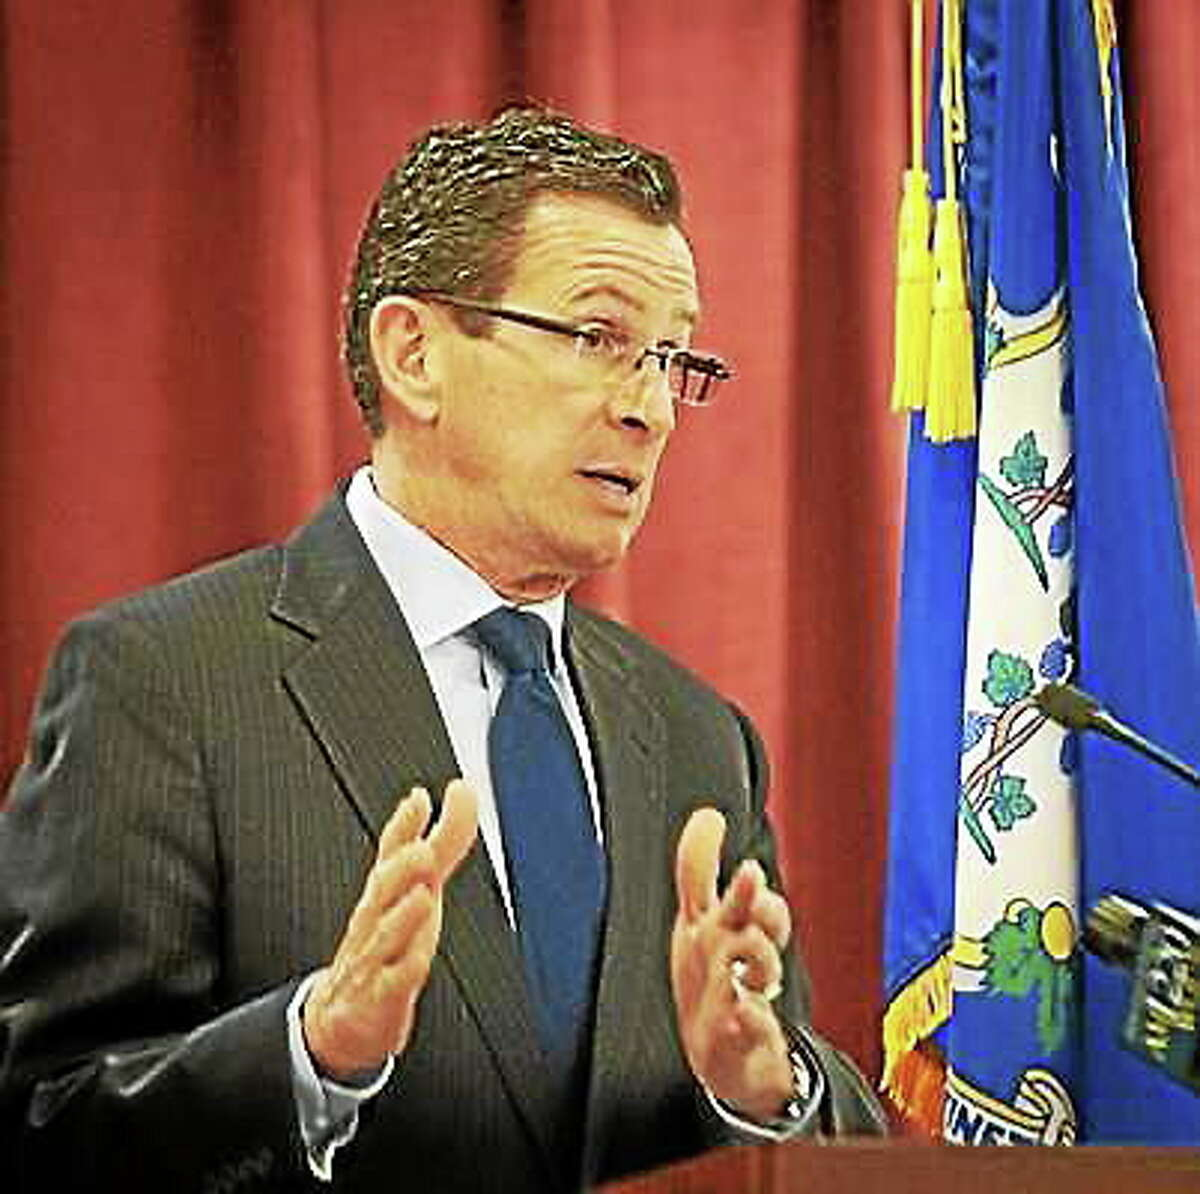 (Melanie Stengel - New Haven Register) Connecticut Gov. Dannel Malloy in this file photo.